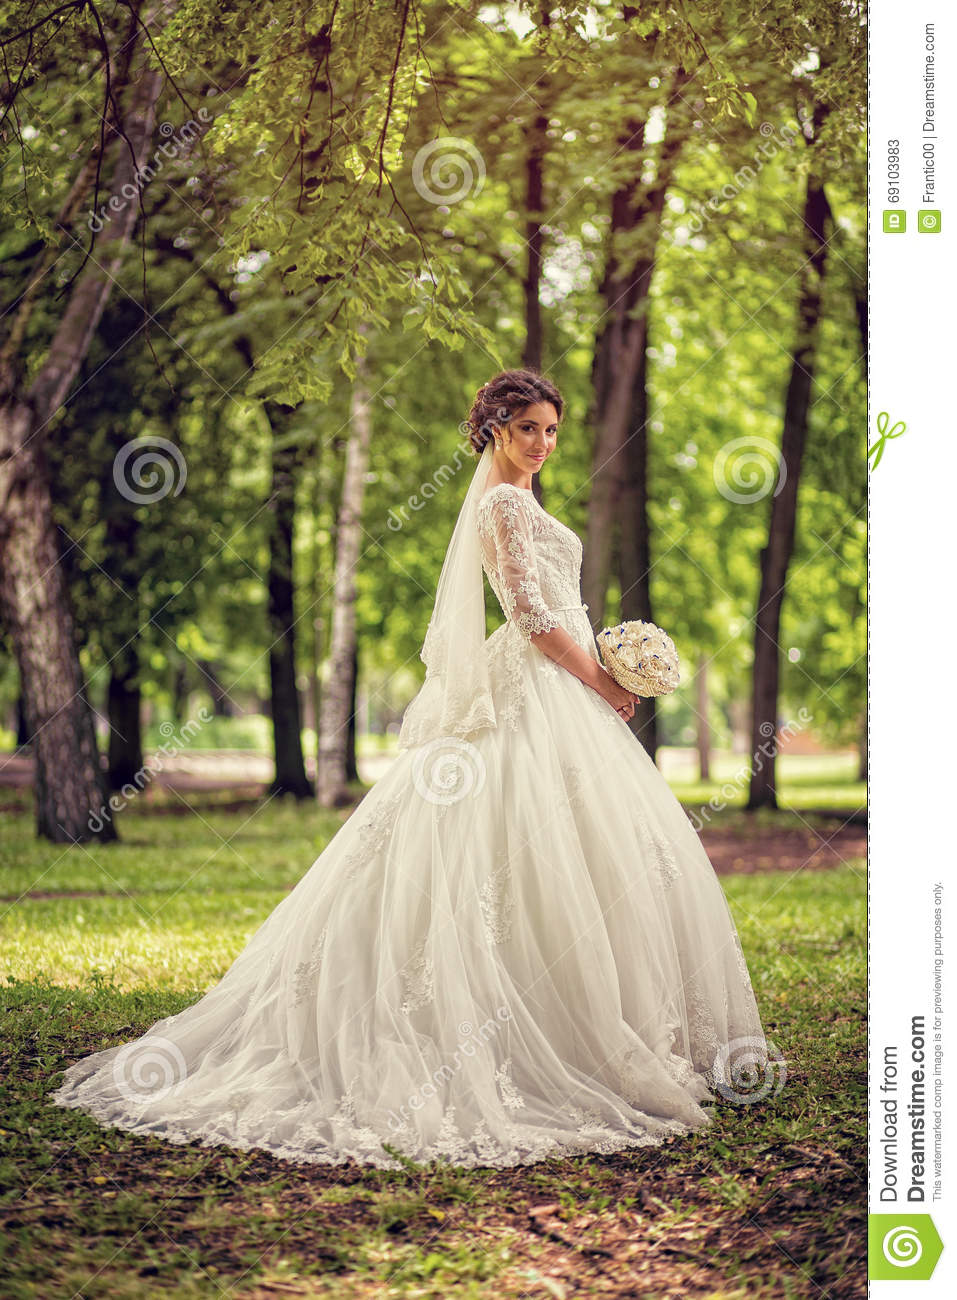 Elegant Bride In Wedding Dress With Dipped Hem Full Length On A Background Of Forest Or Park: Forest Dipped Wedding Dresses At Websimilar.org